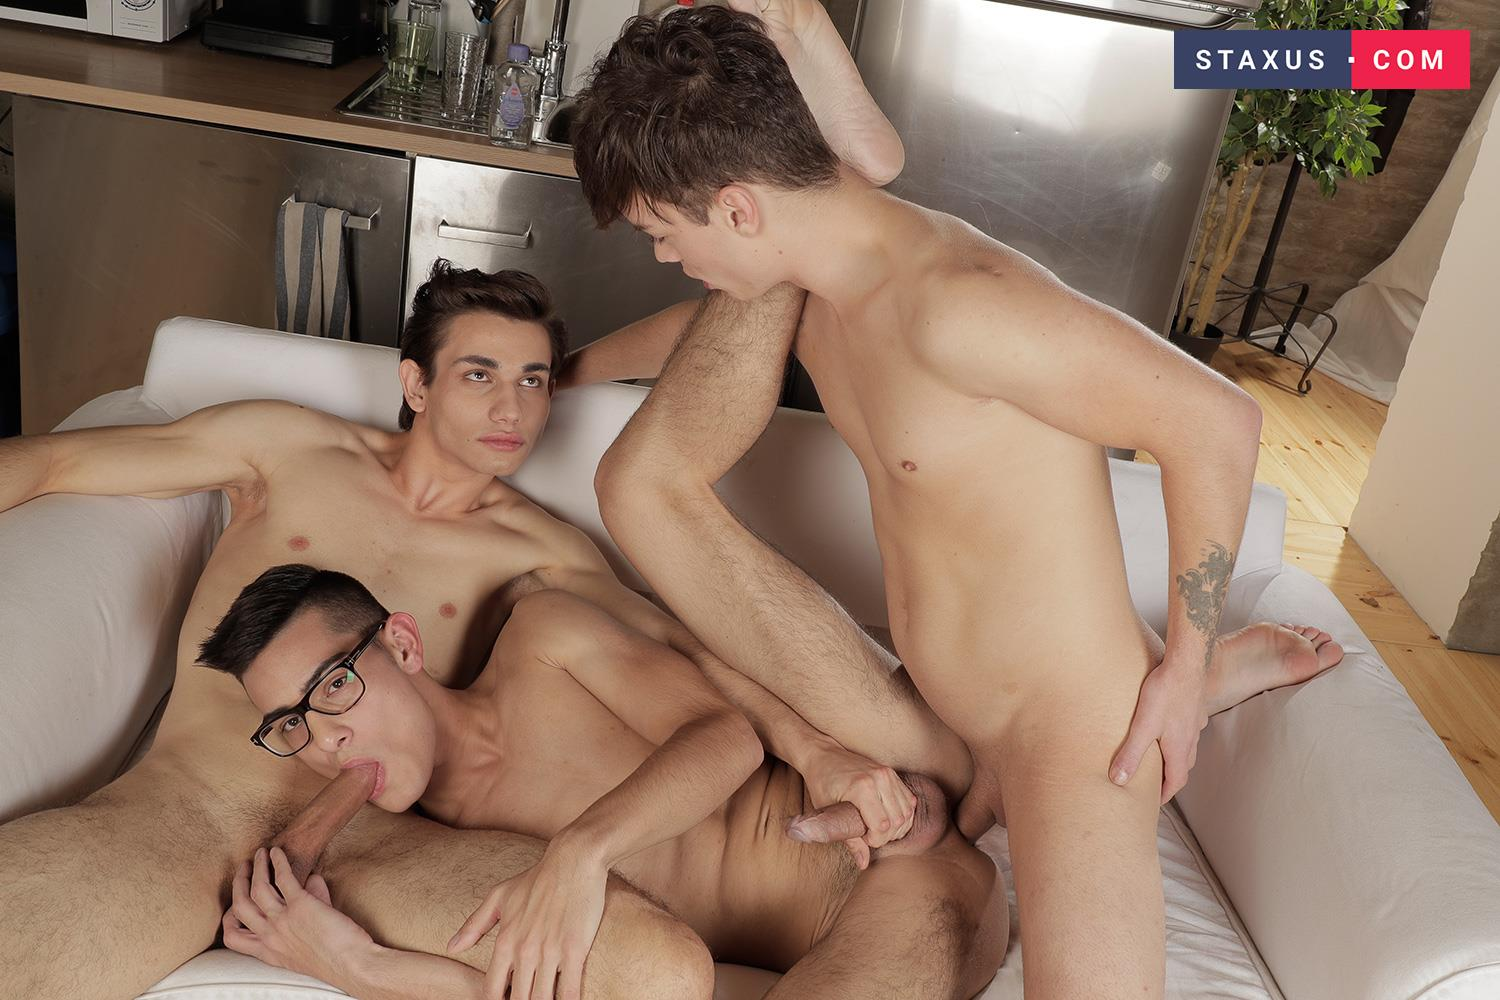 Staxus-Max-Grey-and-Orri-Gaul-and-Lior-Hod-Bareback-Twink-Sex-14 Nerdy Twink Takes Two Bareback Dicks Up The Butt